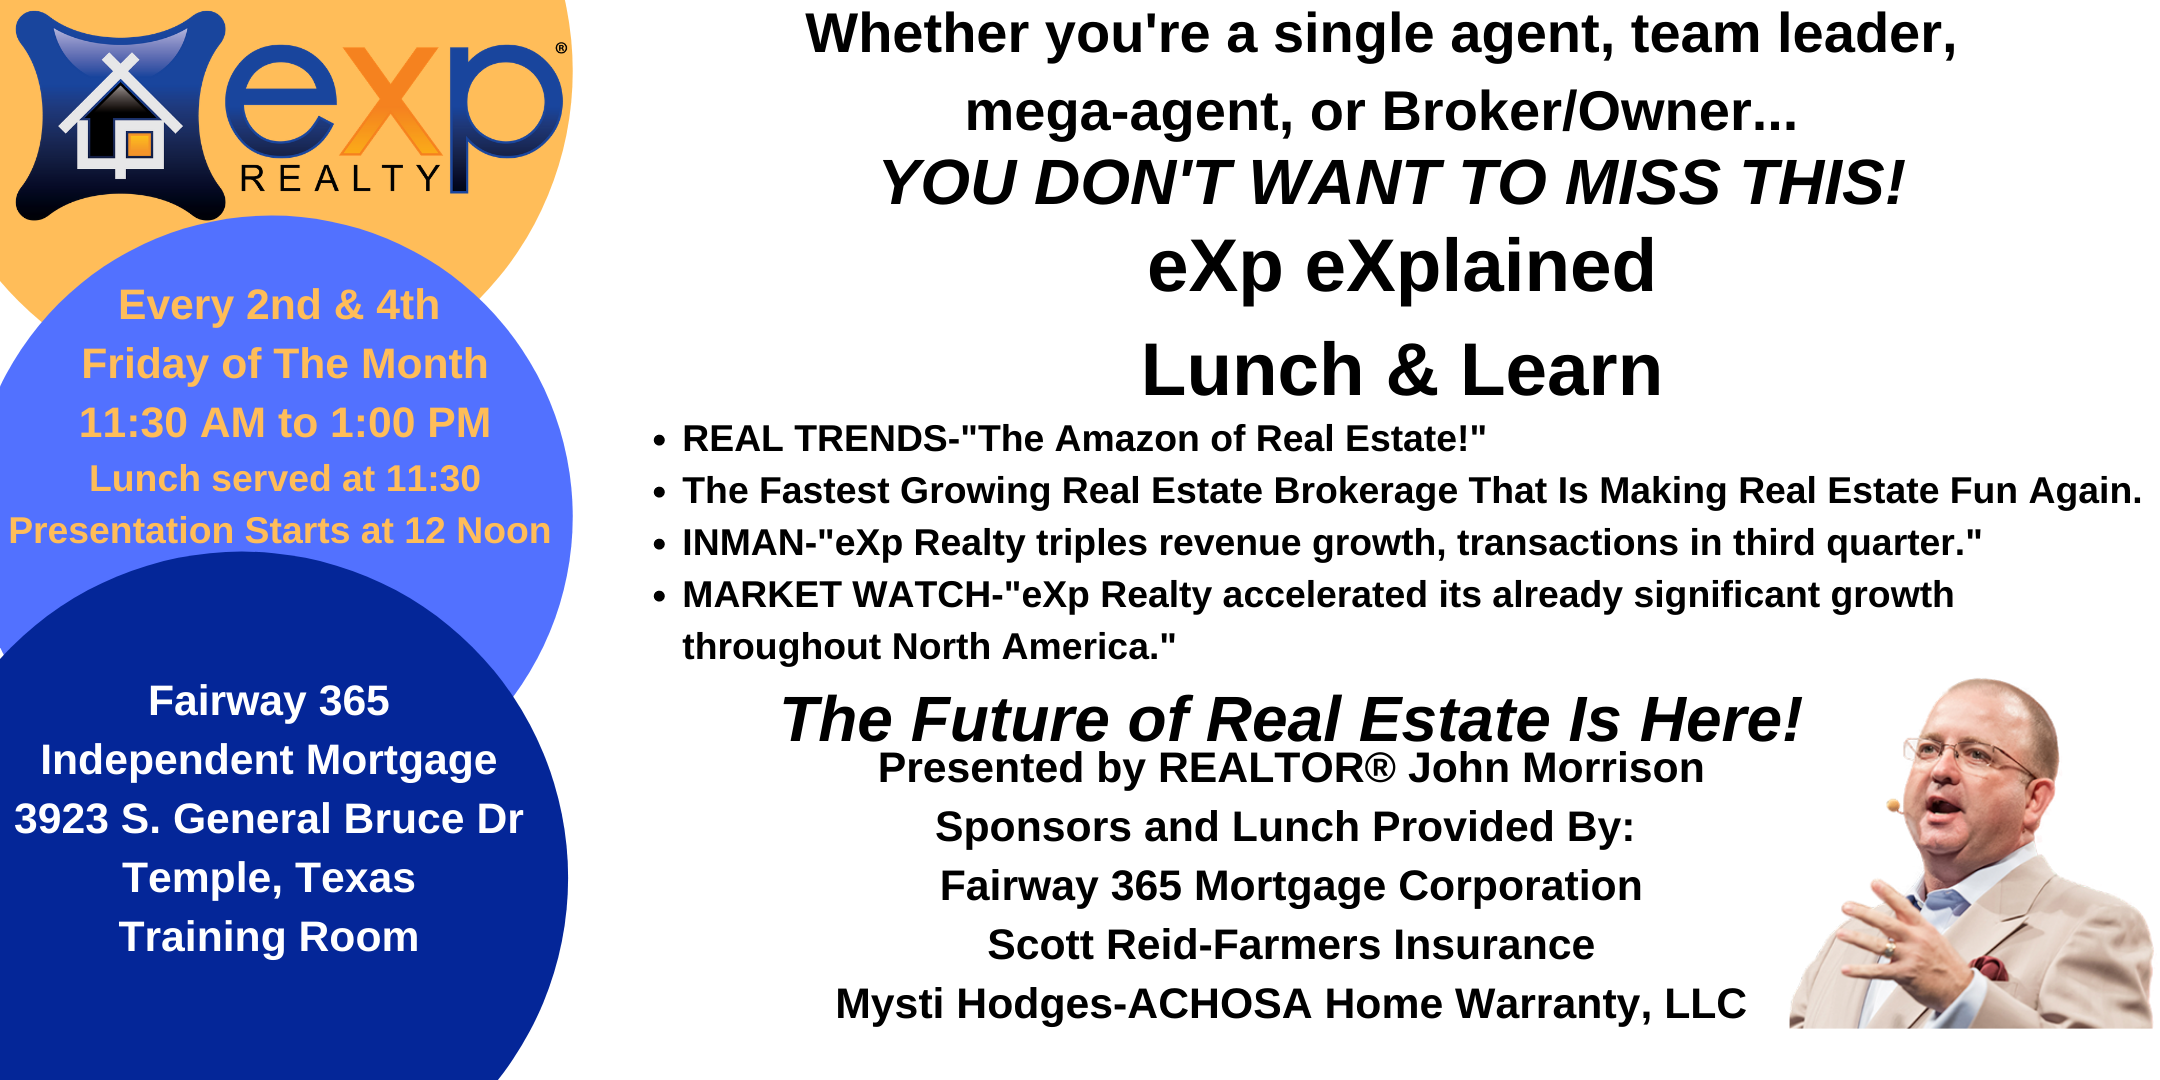 eXp Realty eXplained Lunch & Learn